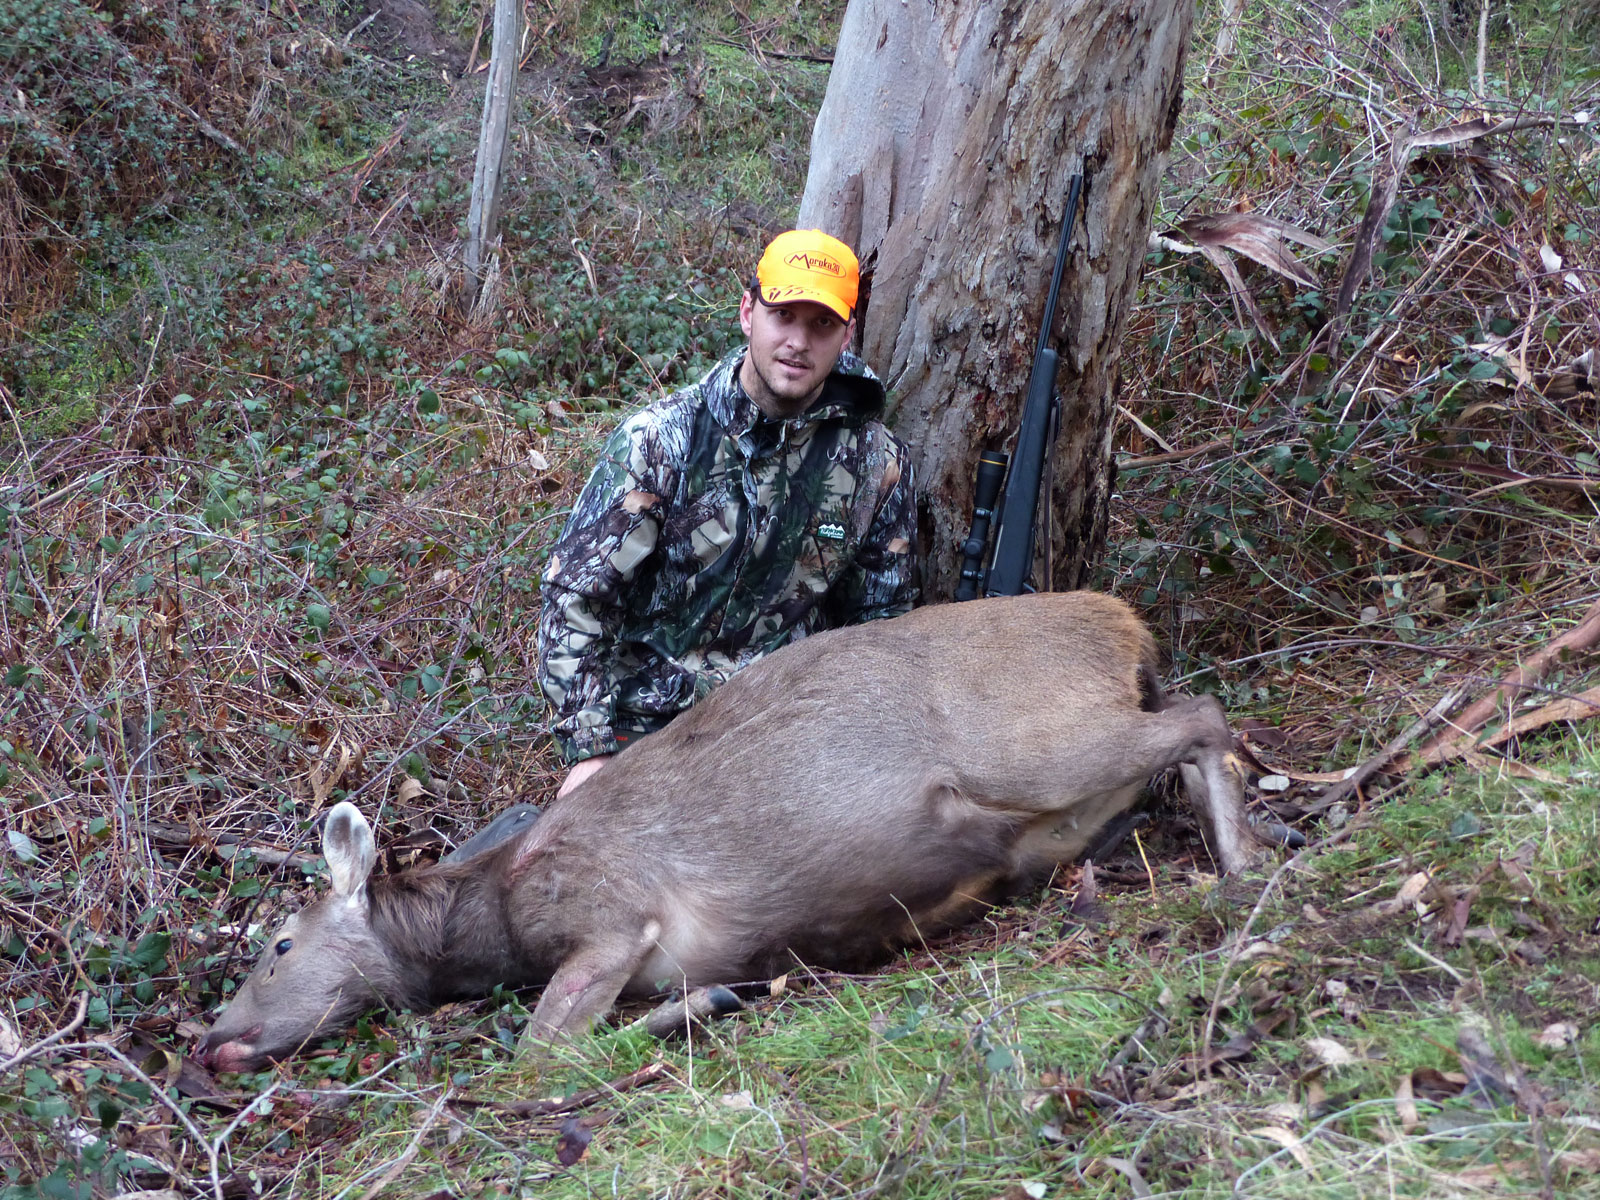 Patrick's first sambar deer